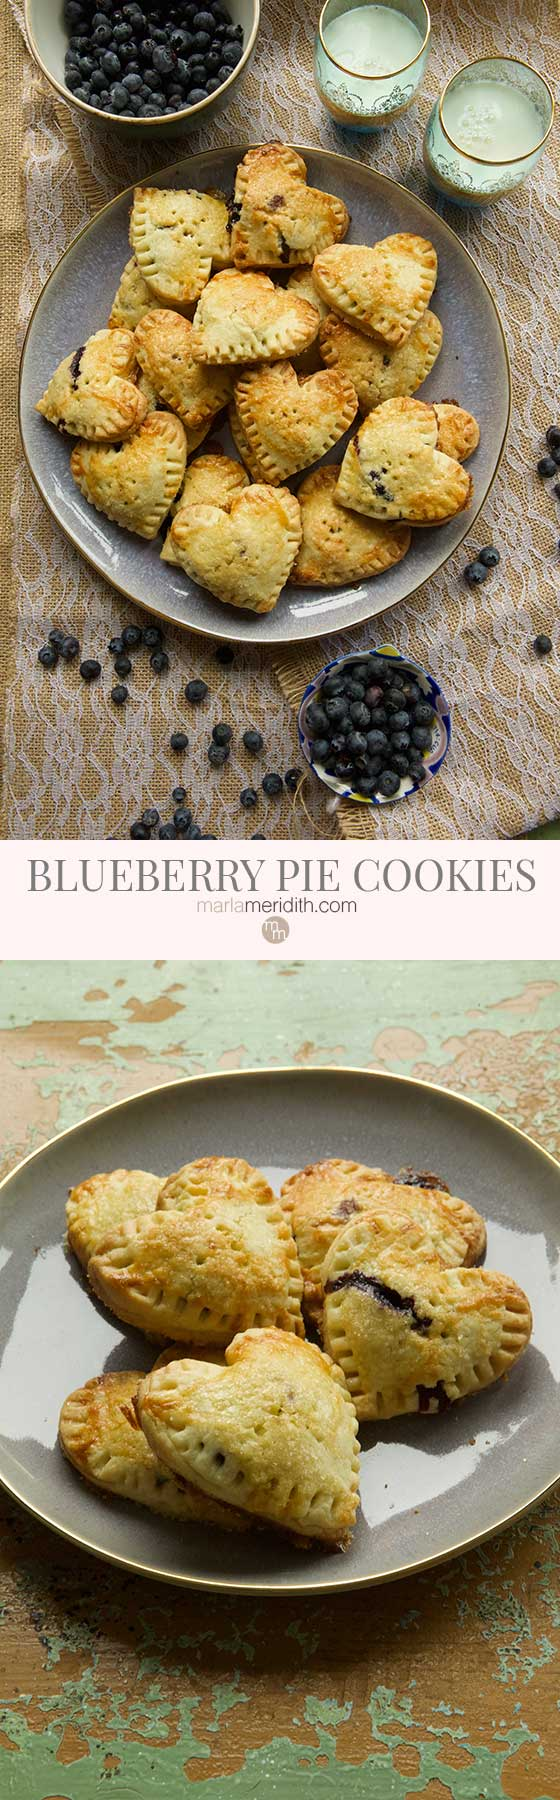 We are completely smitten with these Blueberry Pie Cookies. This recipe is great for entertaining and it will assure you don't eat the entire pie!  MarlaMeridith.com